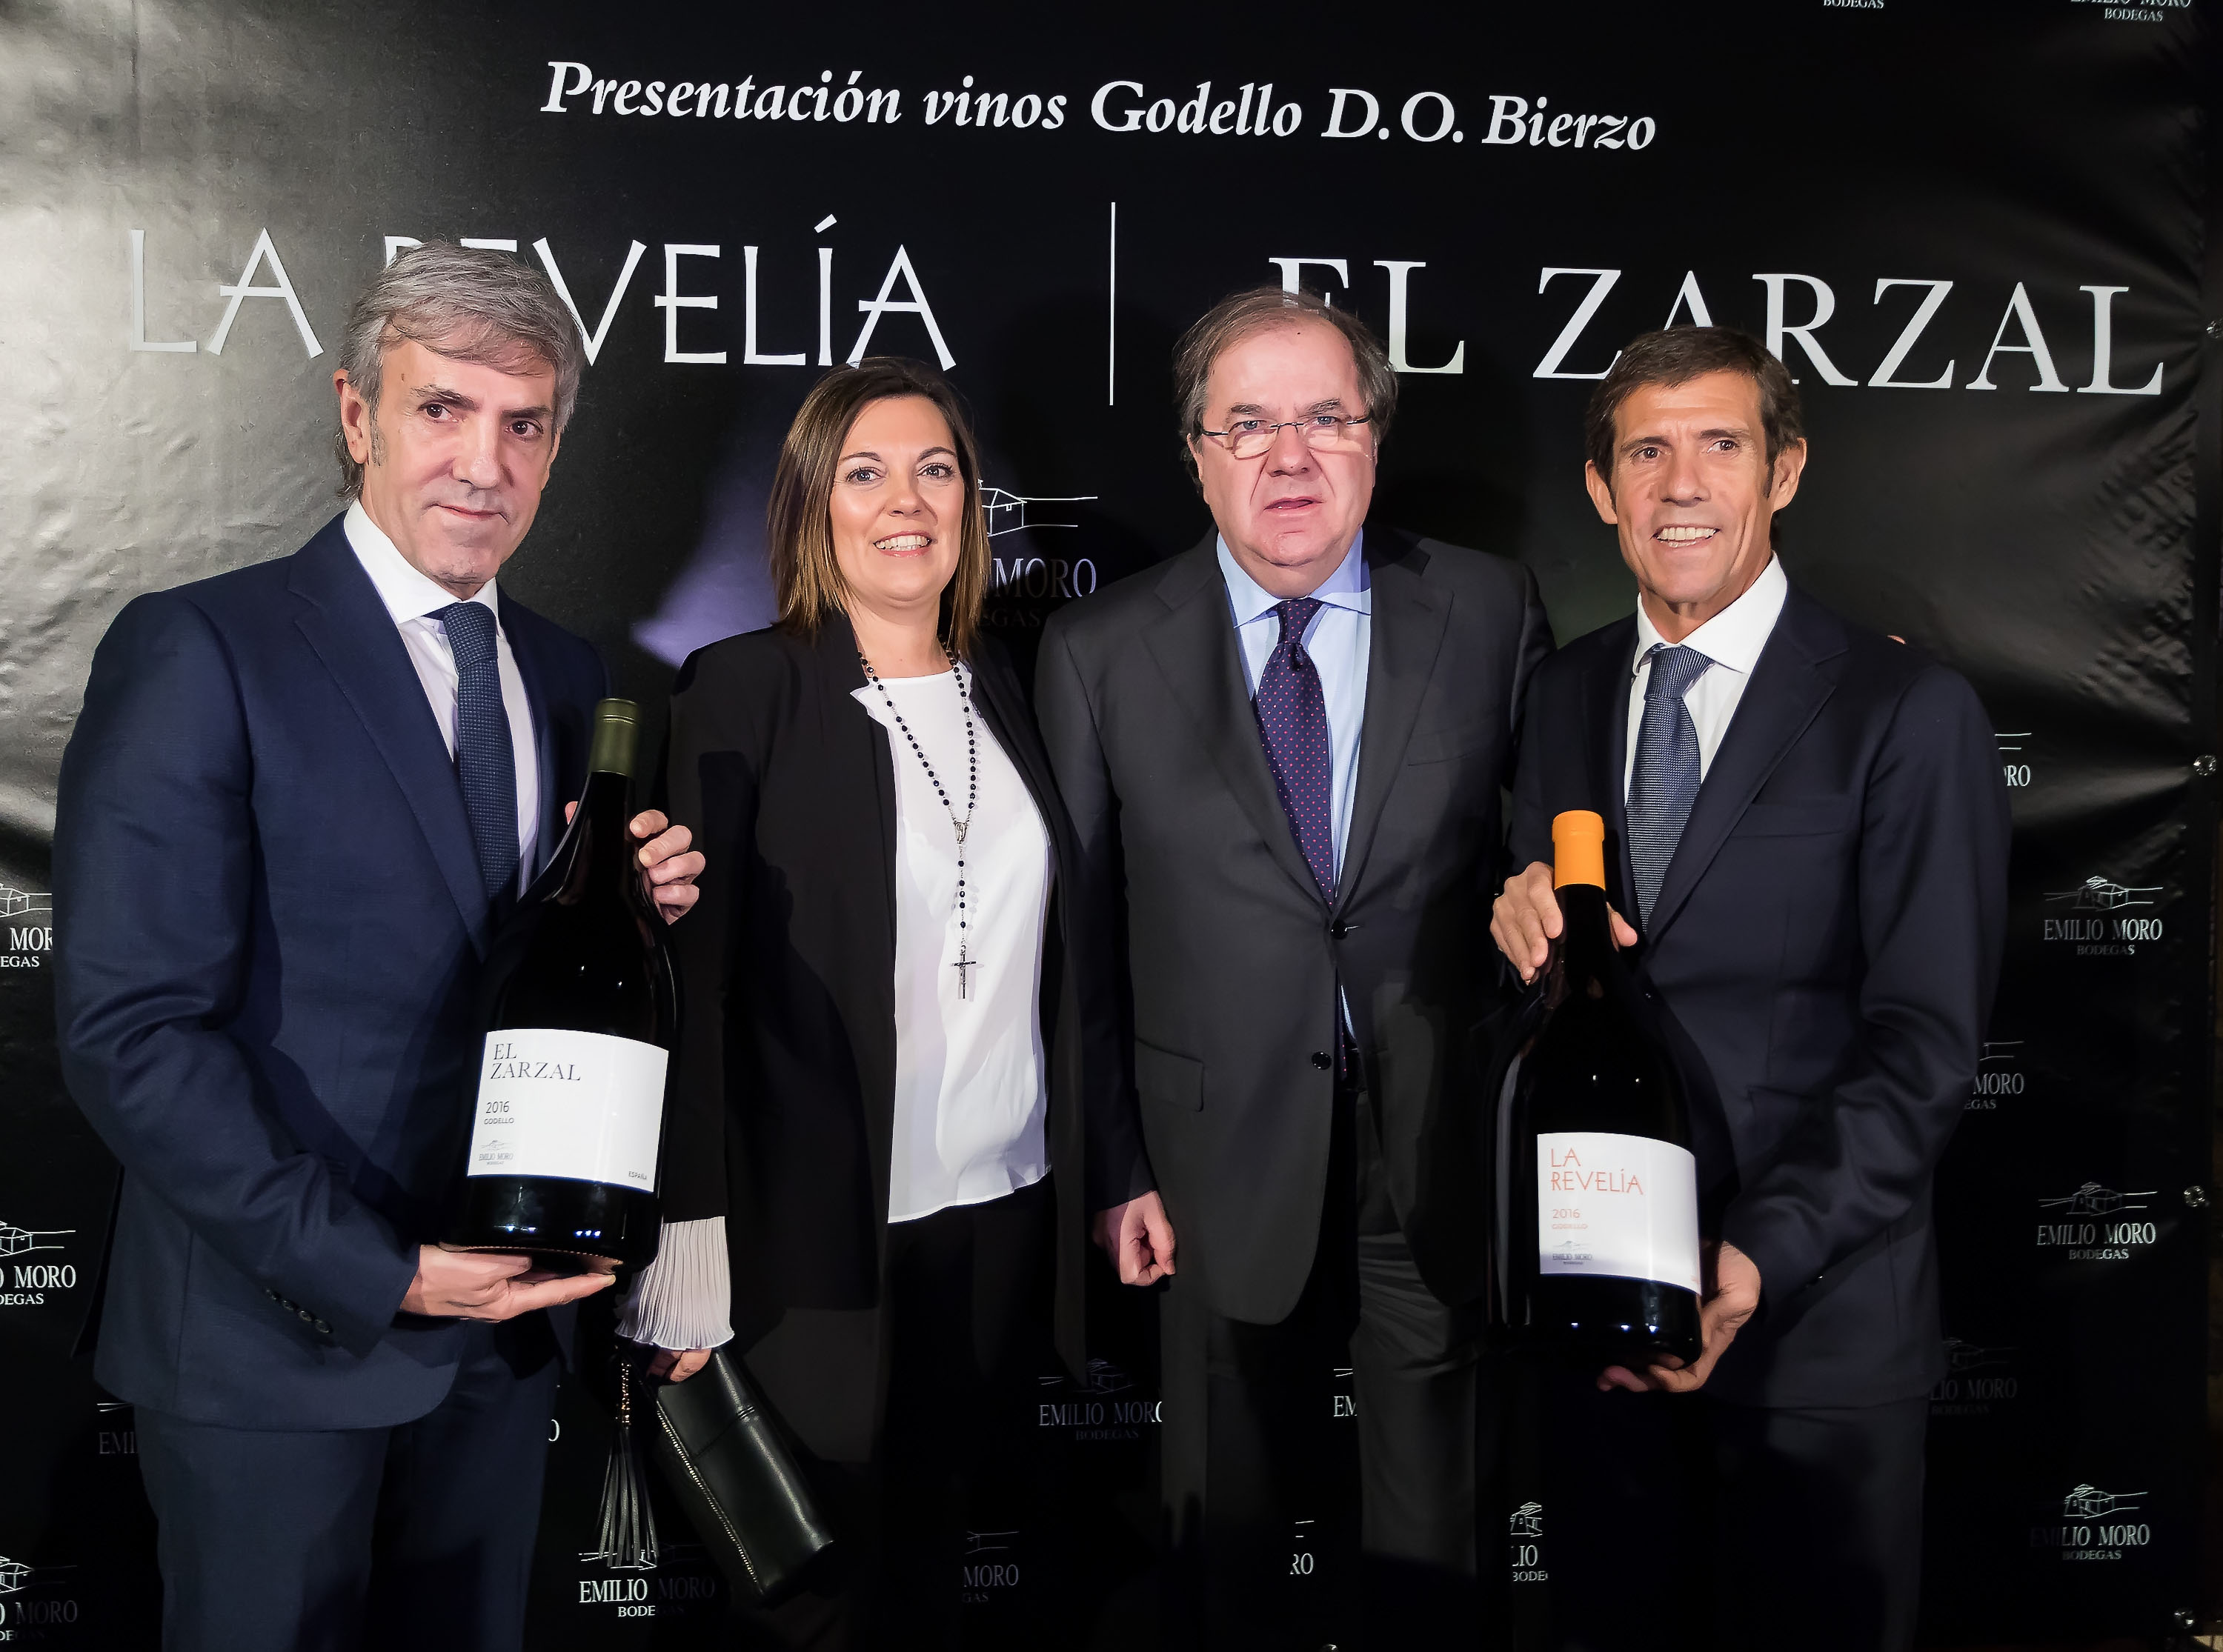 BODEGAS EMILIO MORO PRESENTED YESTERDAY ITS FIRST GODELLO WHITES UNDER THE ORIGIN DENOMINATION BIERZO